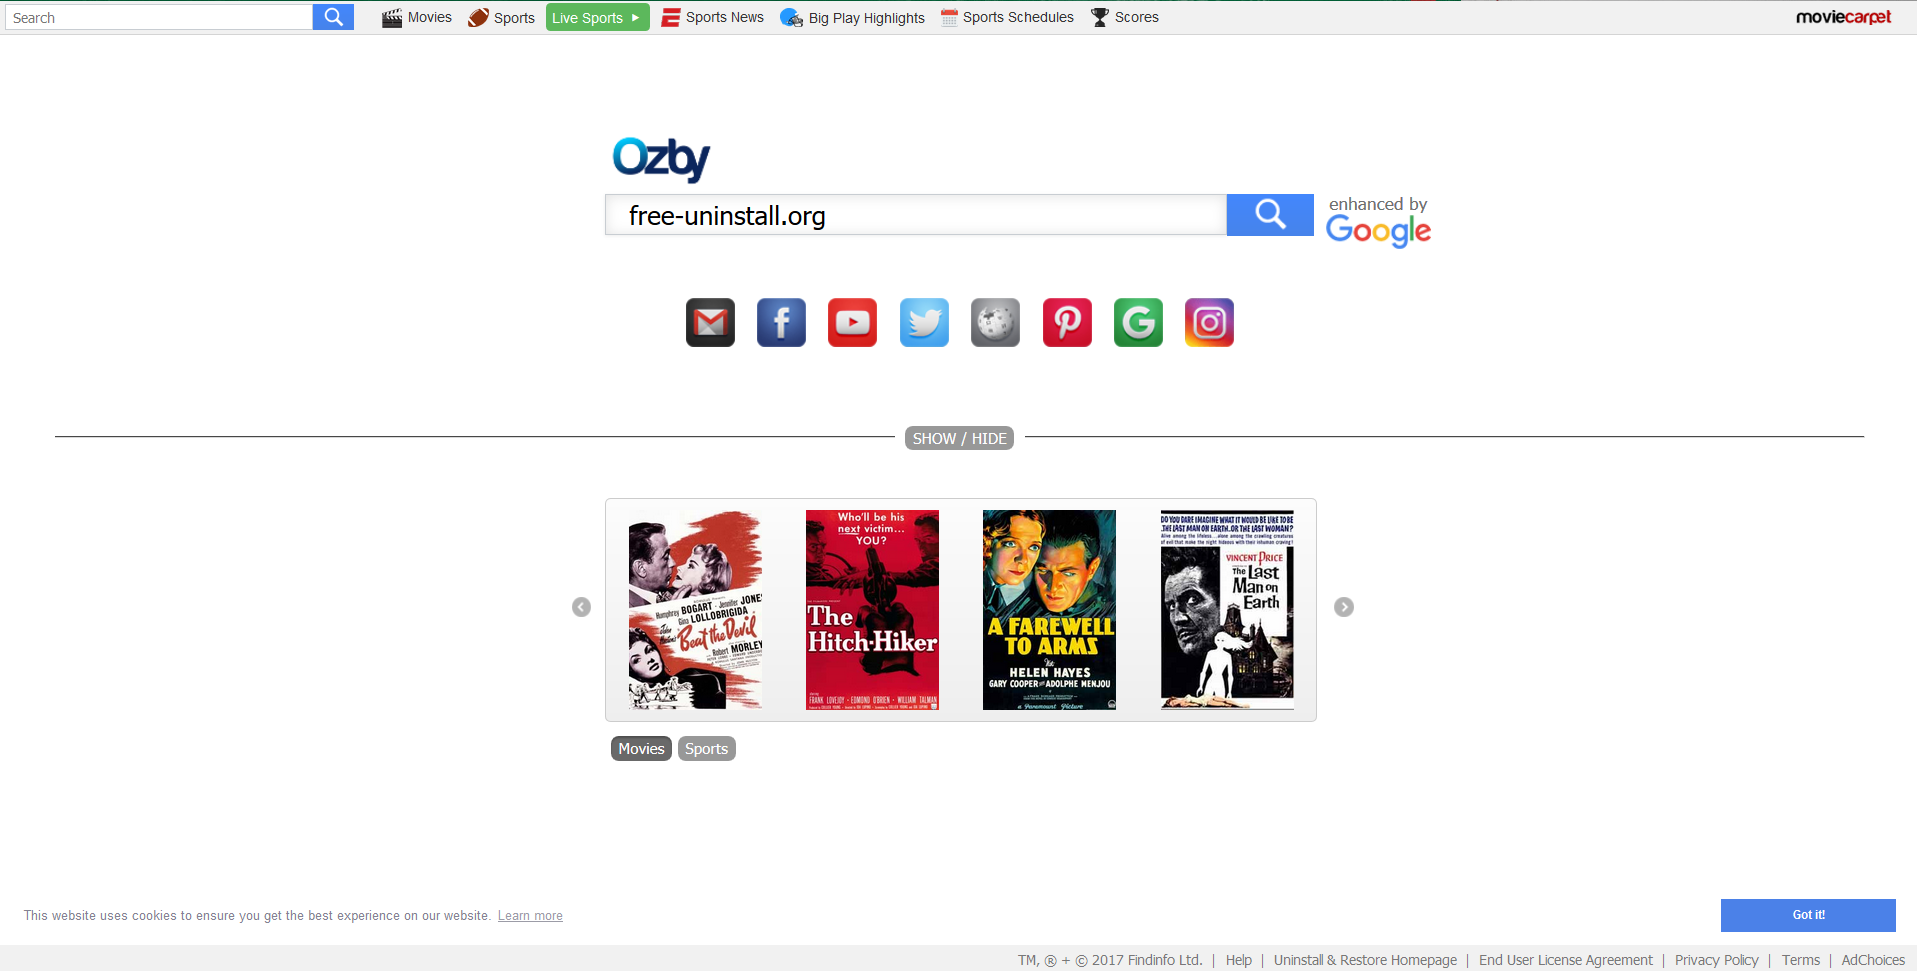 Search.moviecarpet.com hijacker